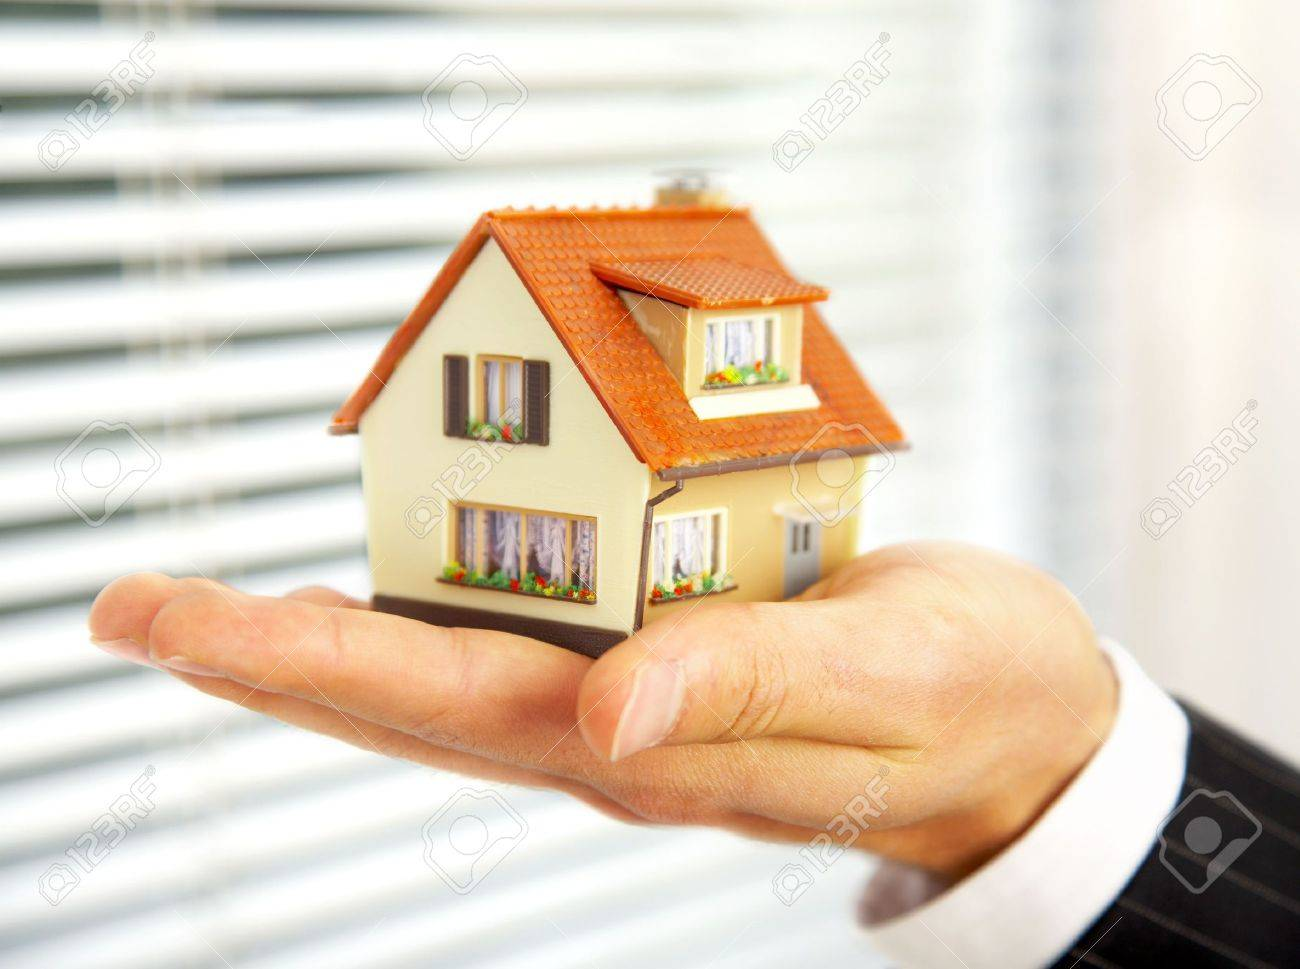 The house in human hands Stock Photo - 3668890